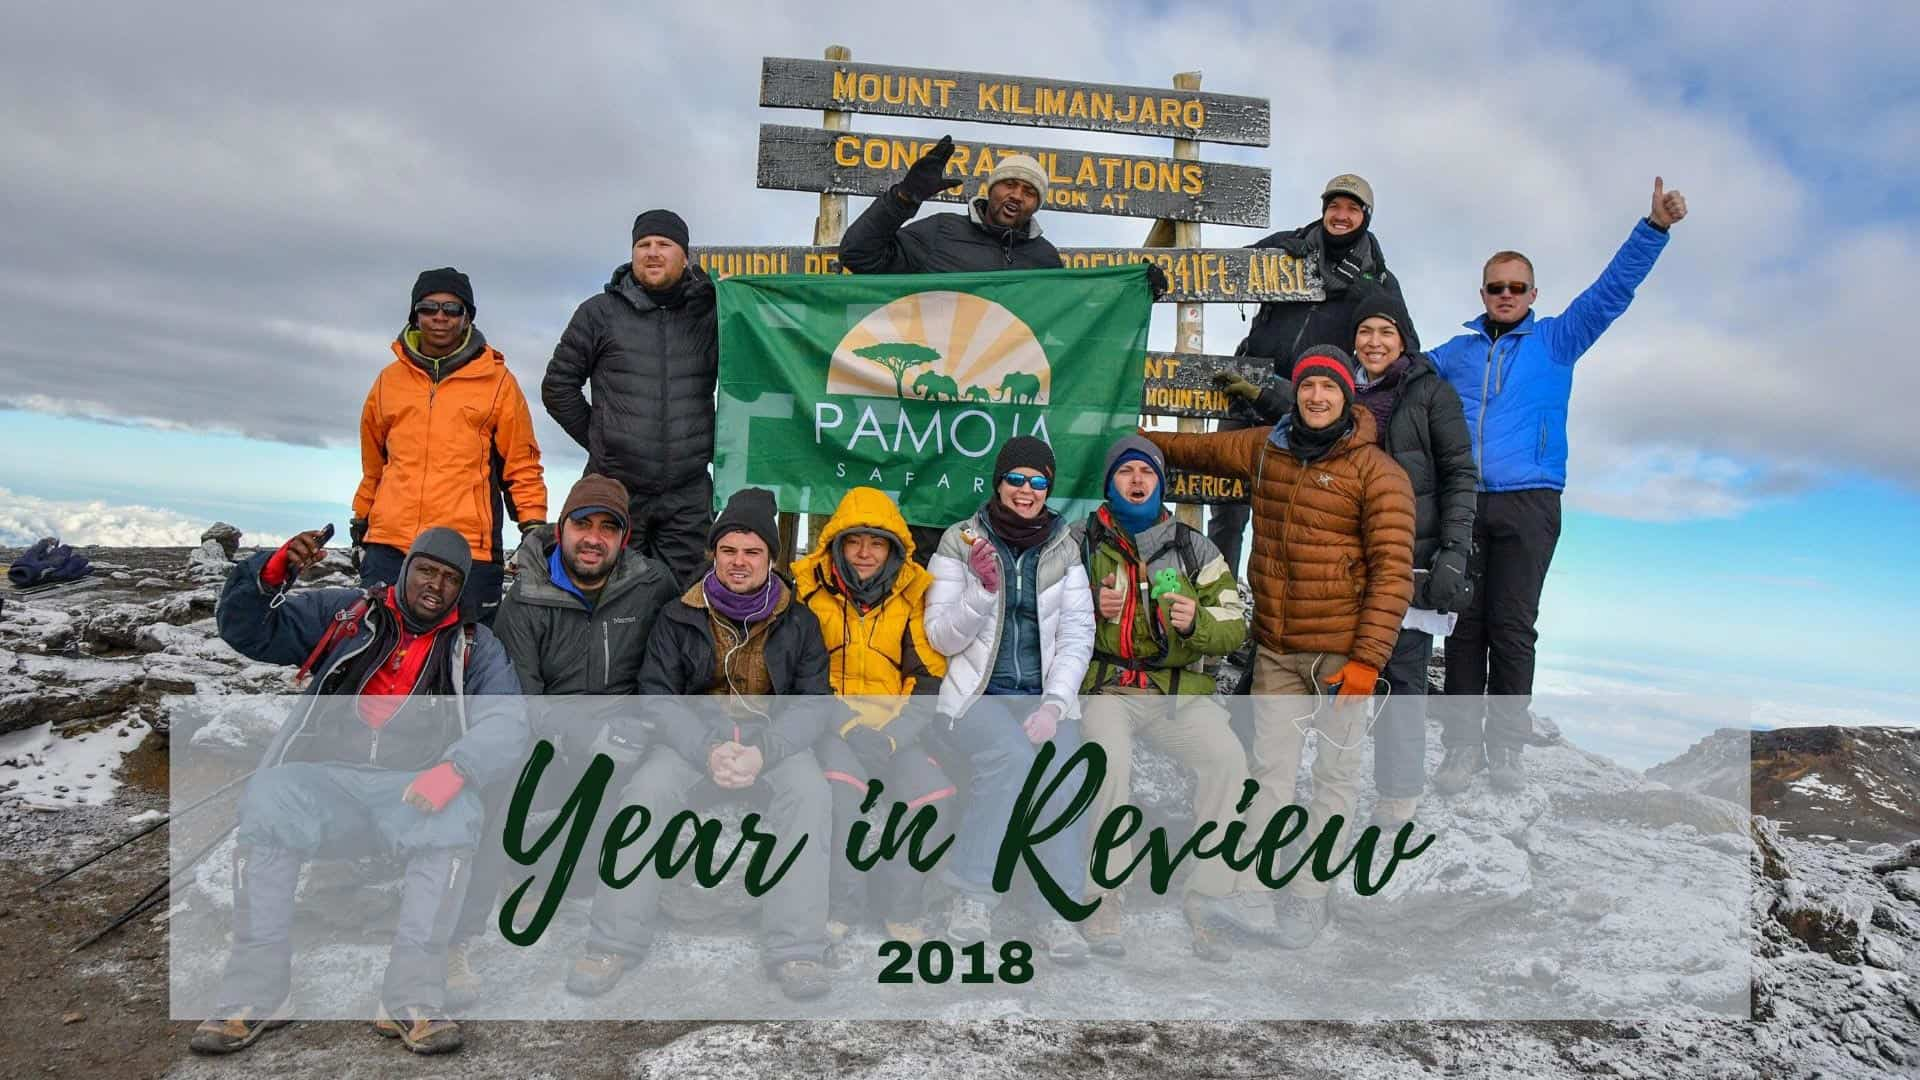 Year in Review 2018